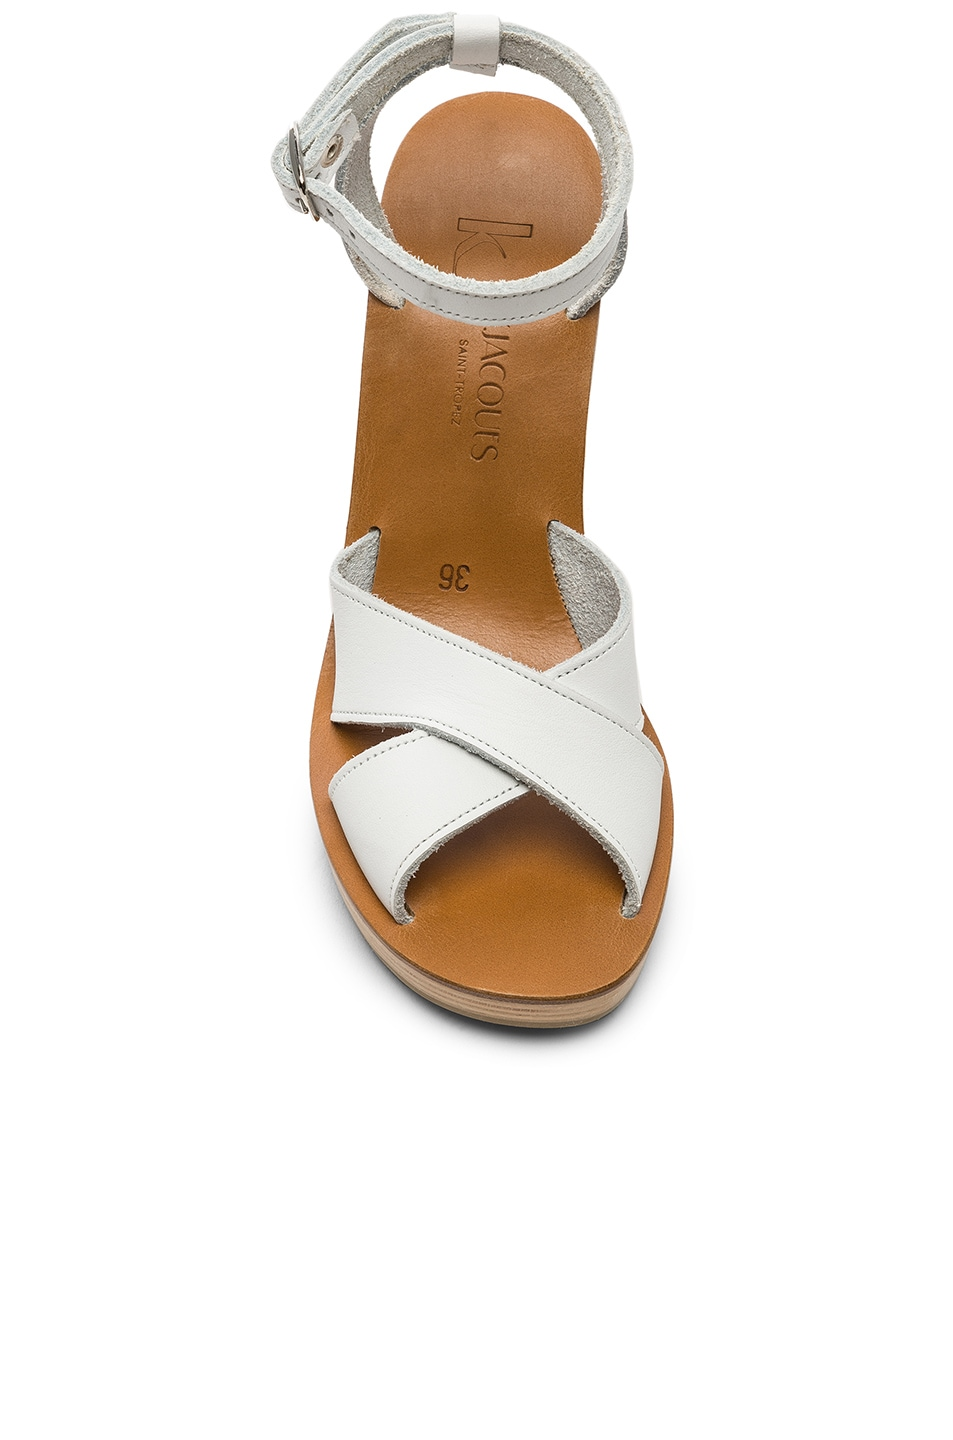 Image 4 of K Jacques Figuier Sandal in Pul Blanc